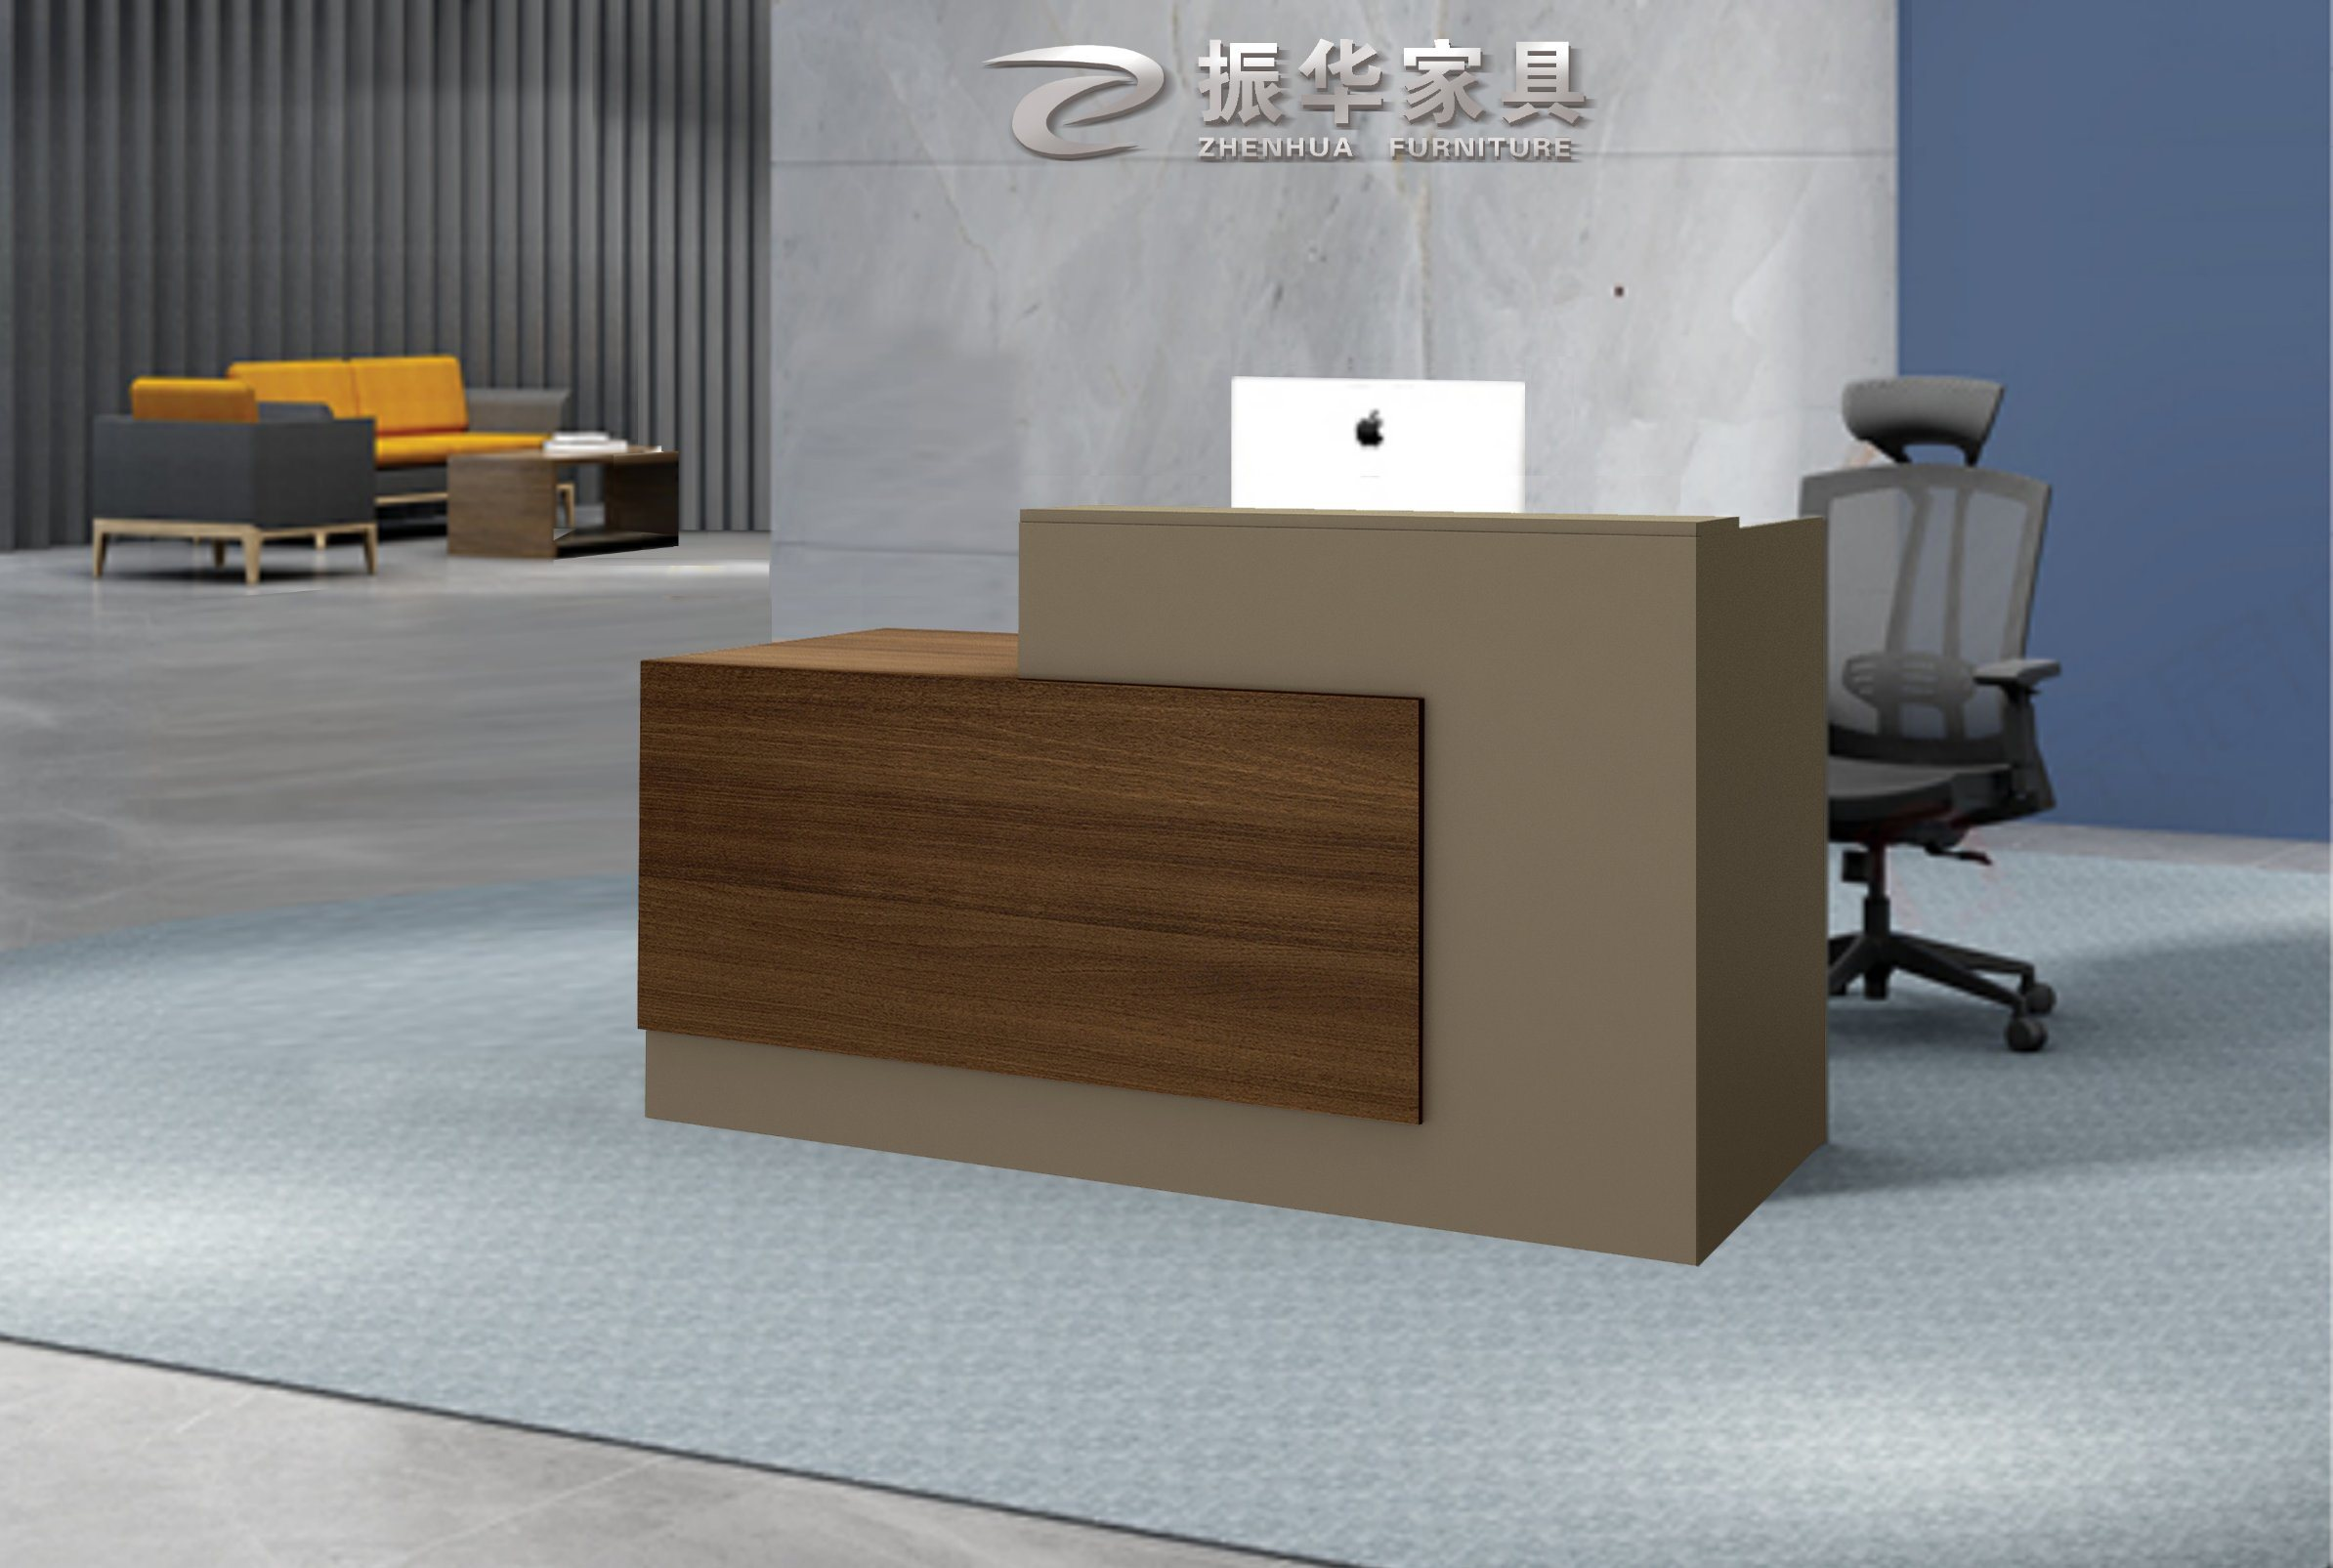 China Custom Color And Size Free Design Modern Design Counter Wooden Office Reception Desk Office Furniture Hospital Reception Counter China Office Table Modern Office Table